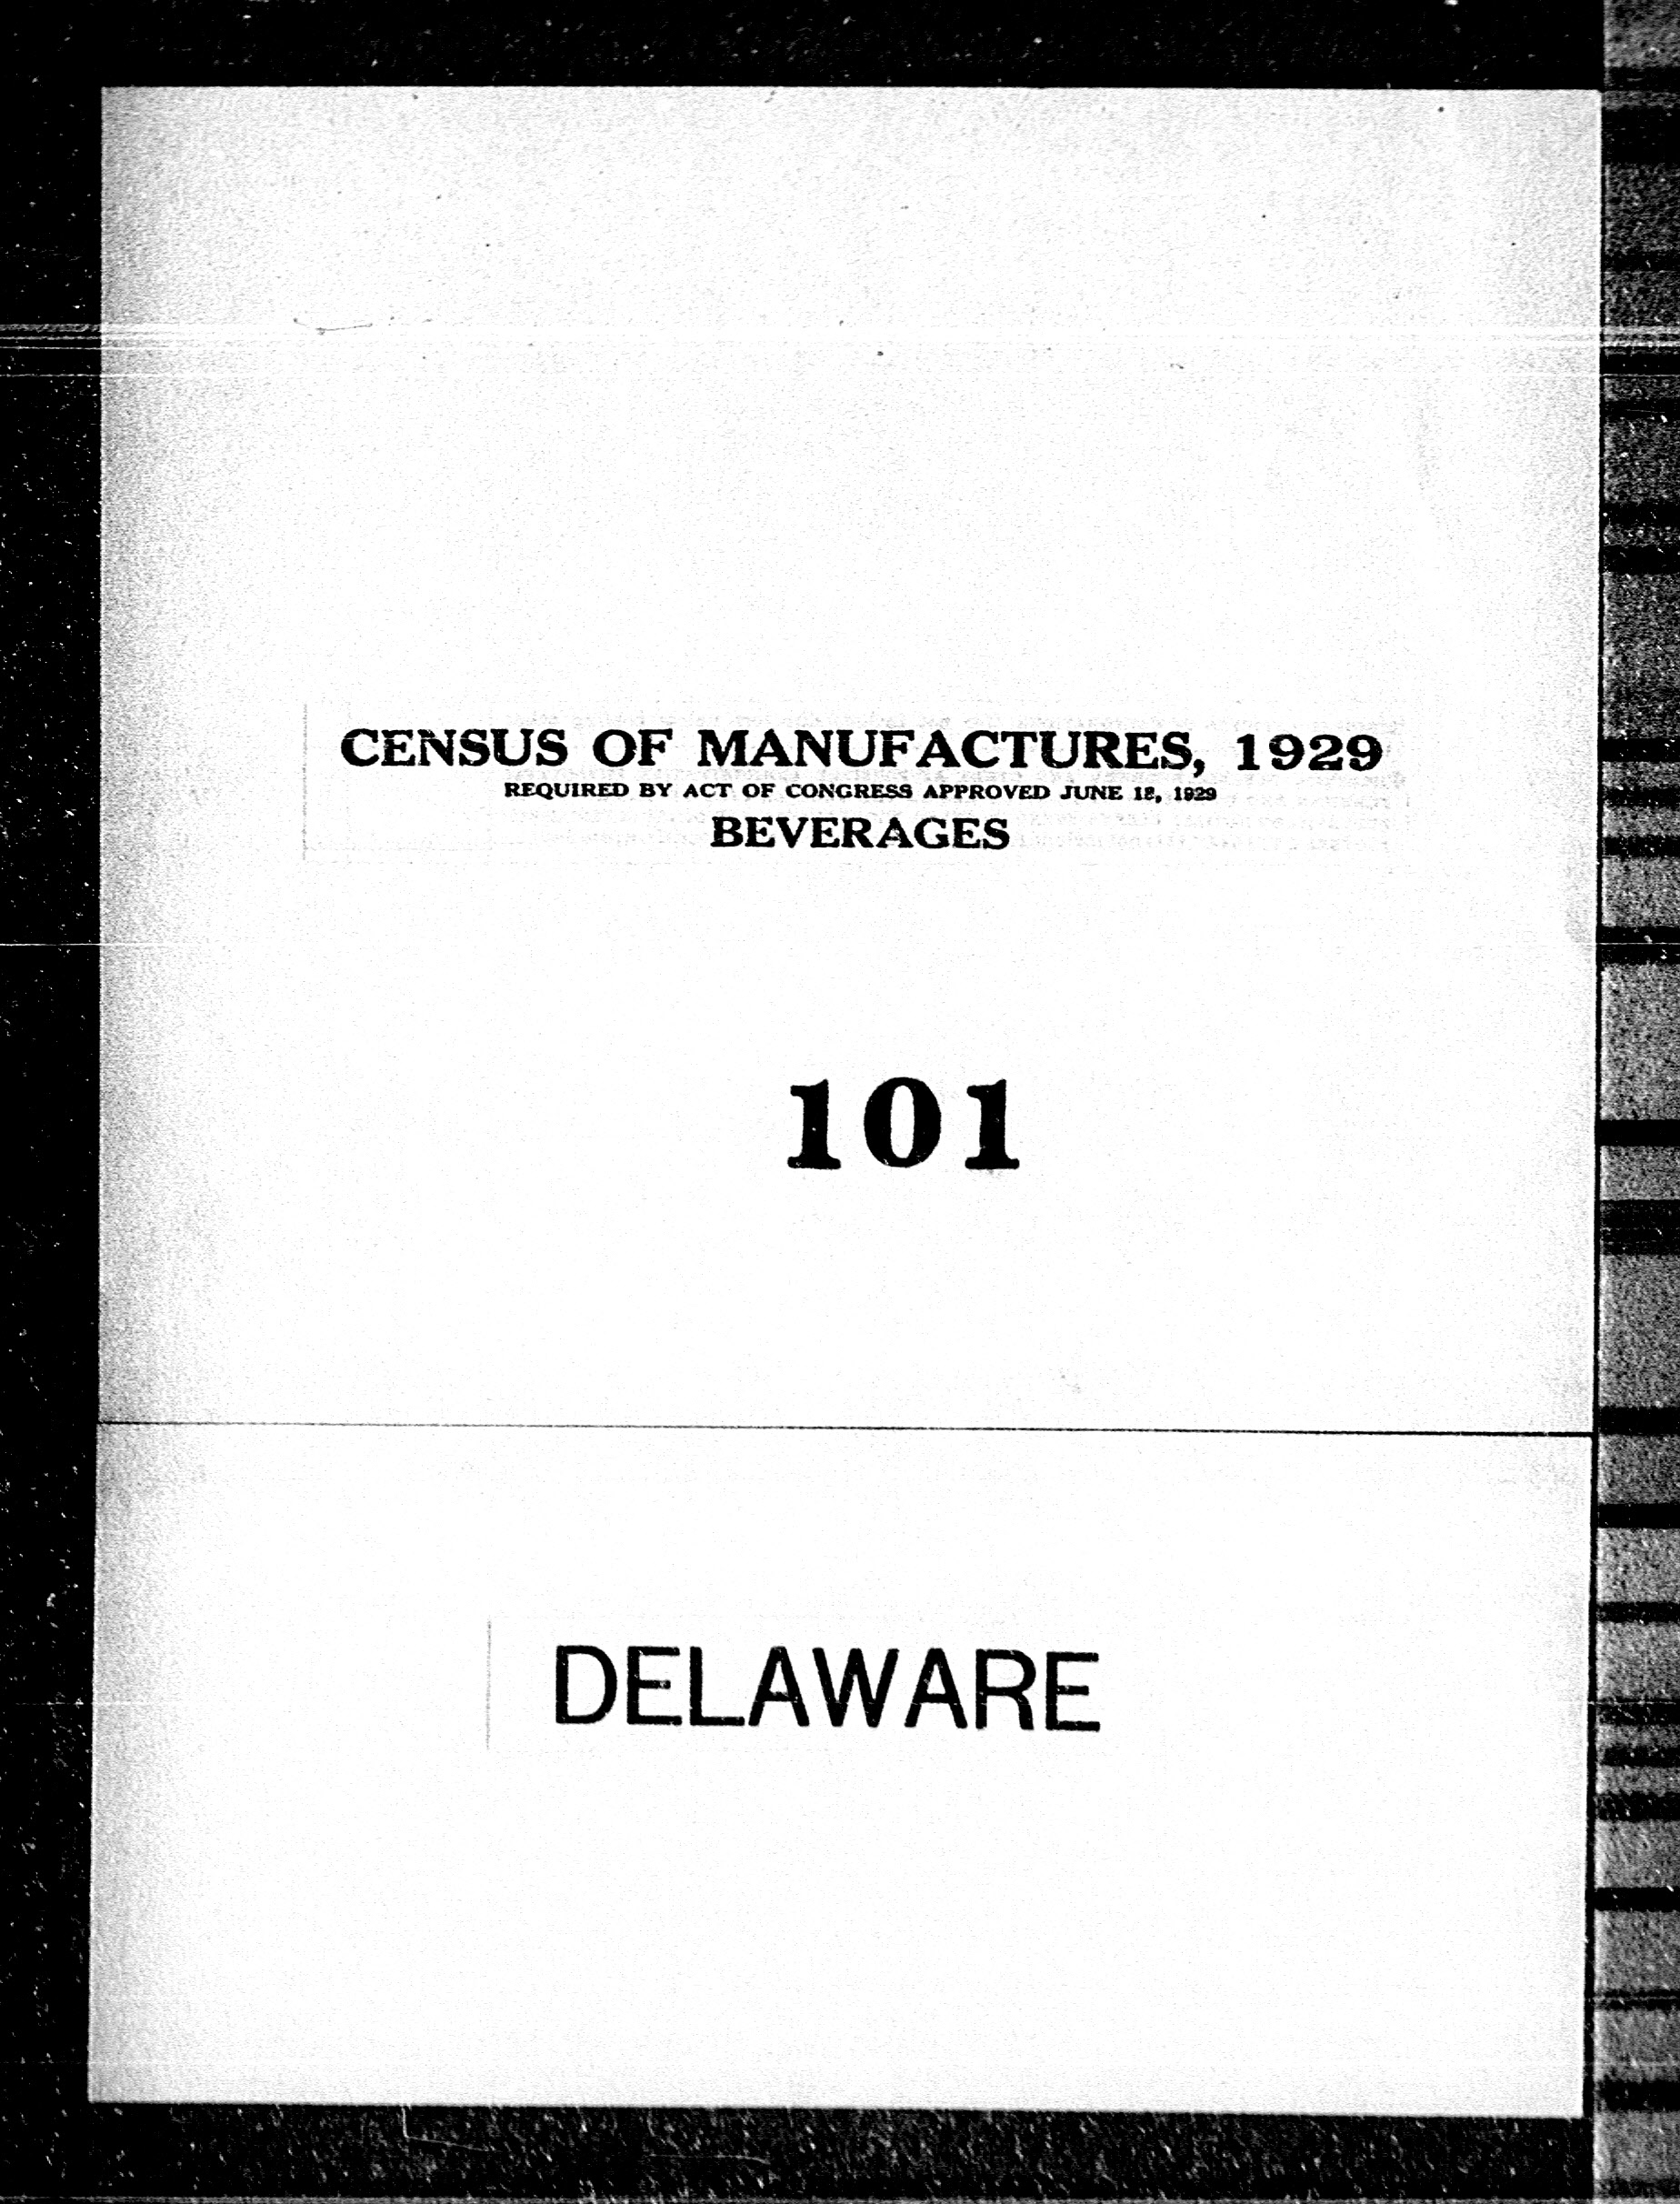 Delaware: Industry No. 101 - Beverages